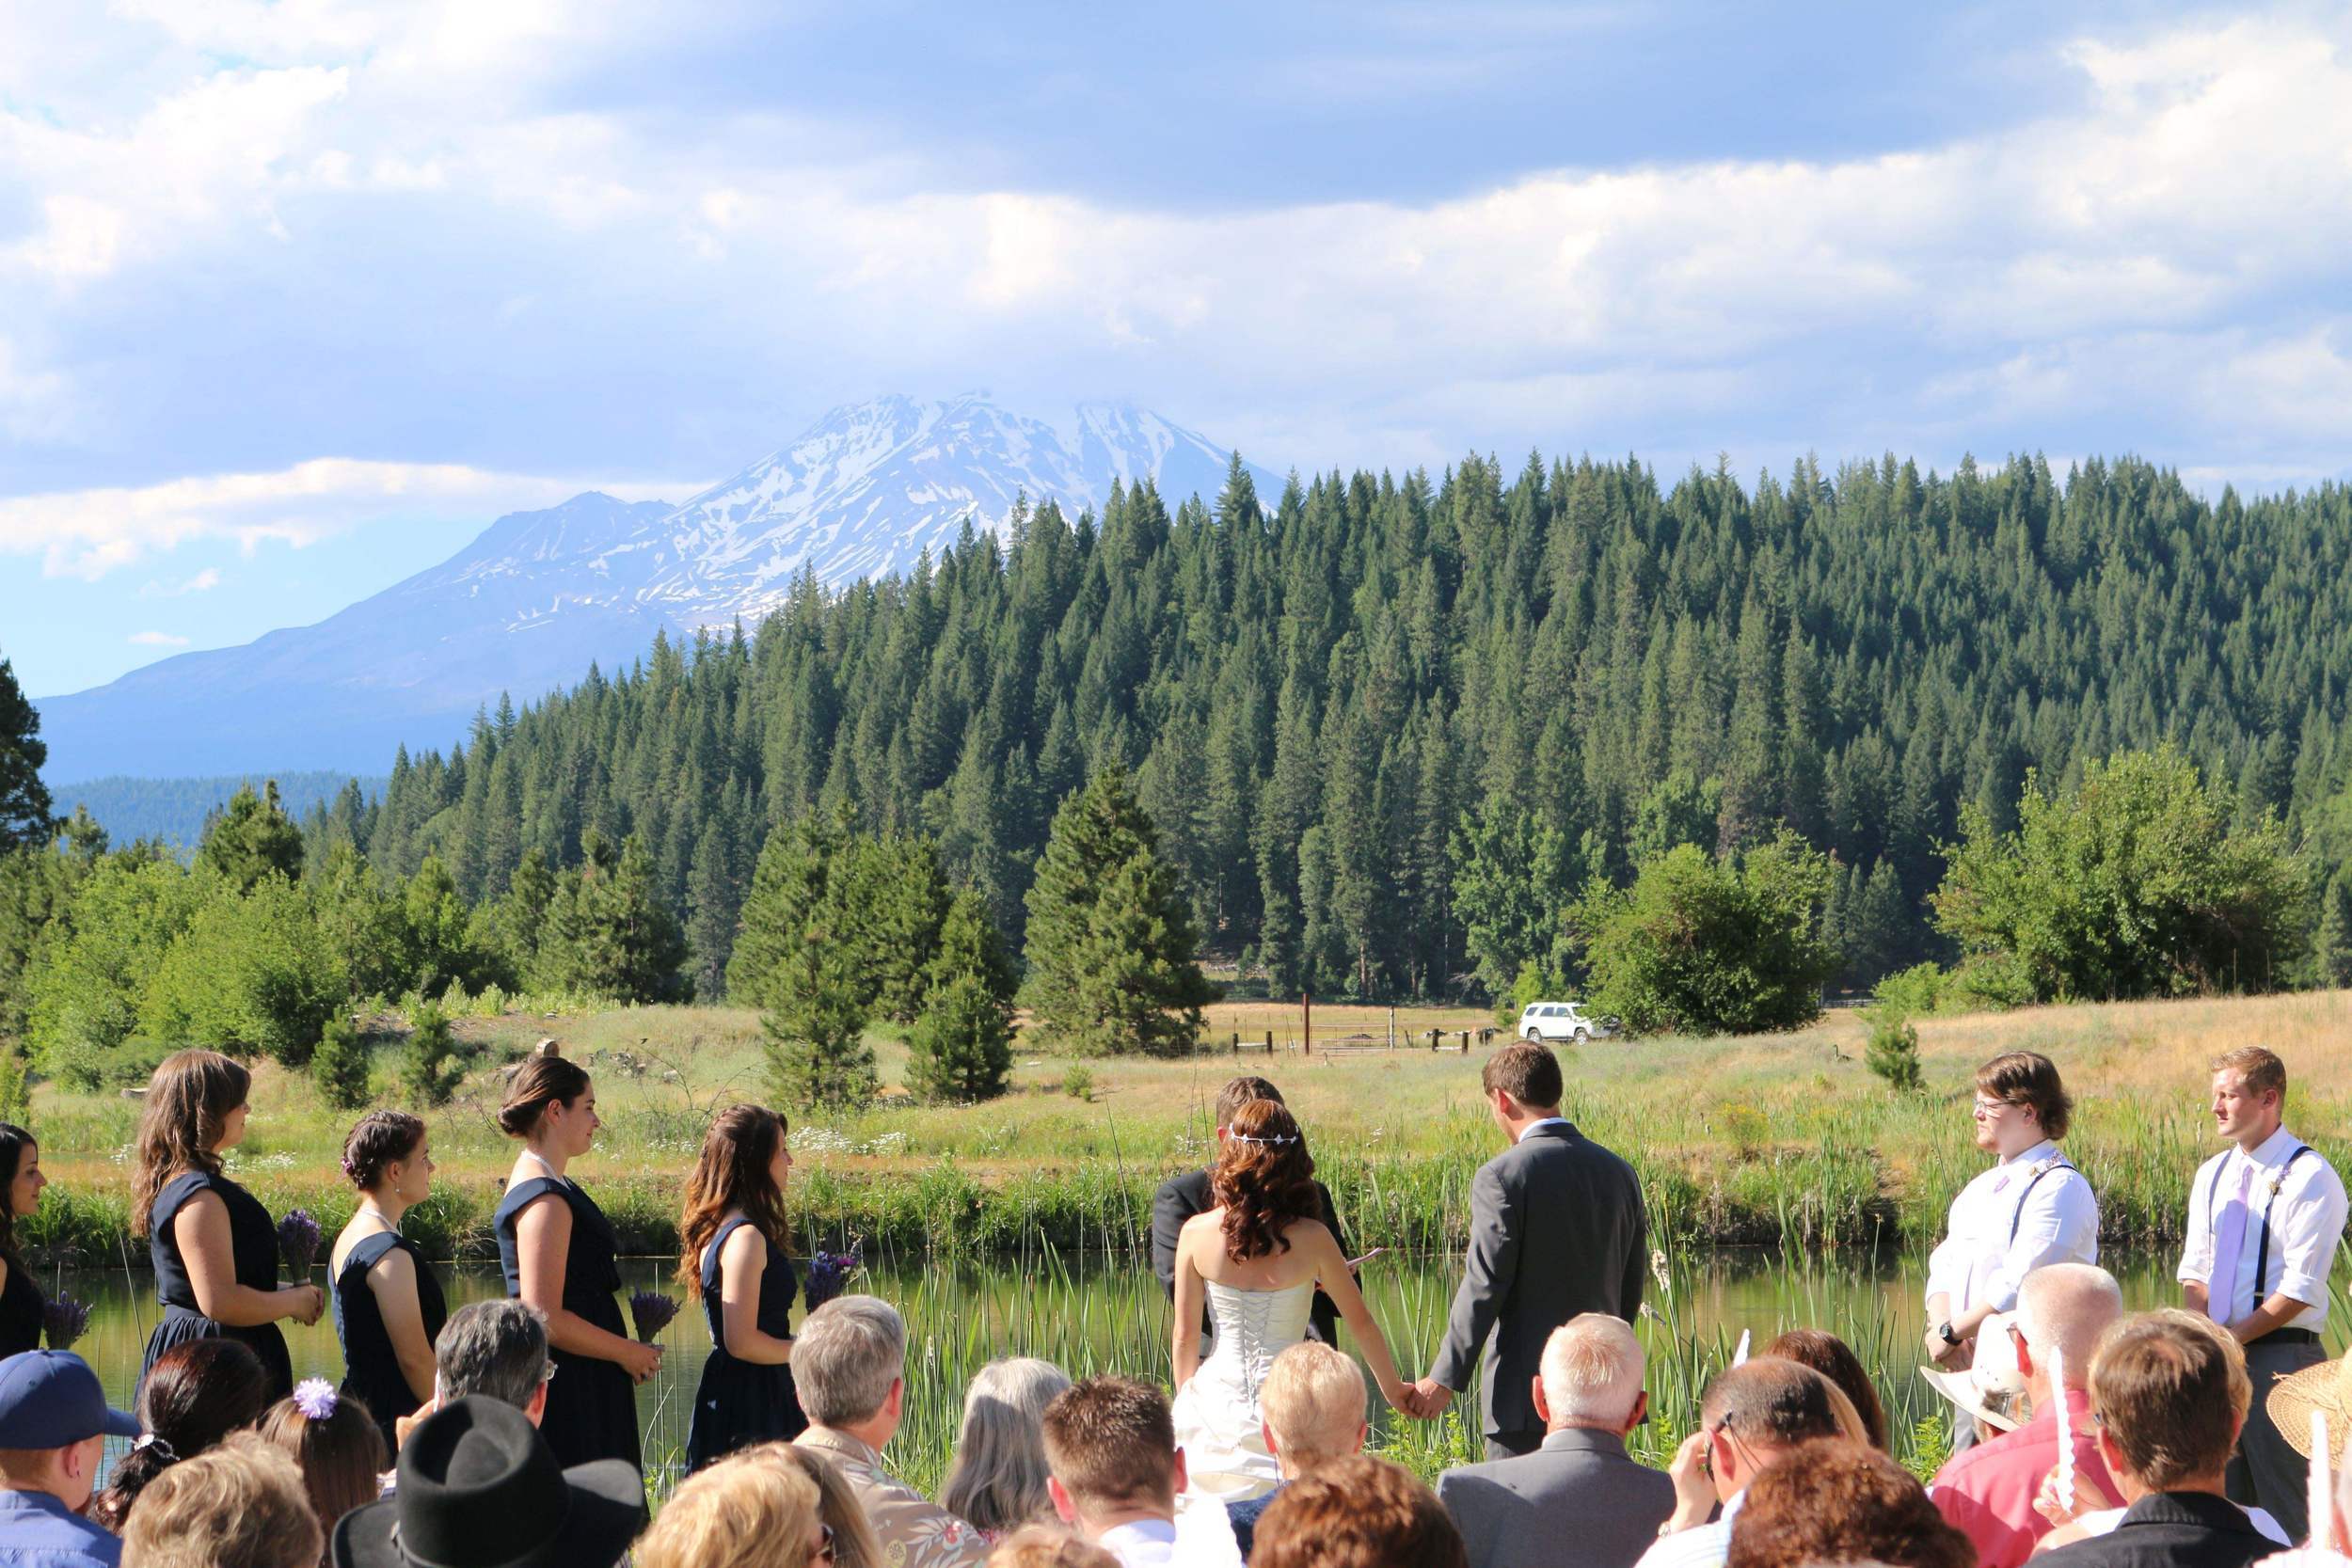 Enjoy your special day with a ceremony on the peninsula with the beautiful majestic Mount Shasta.